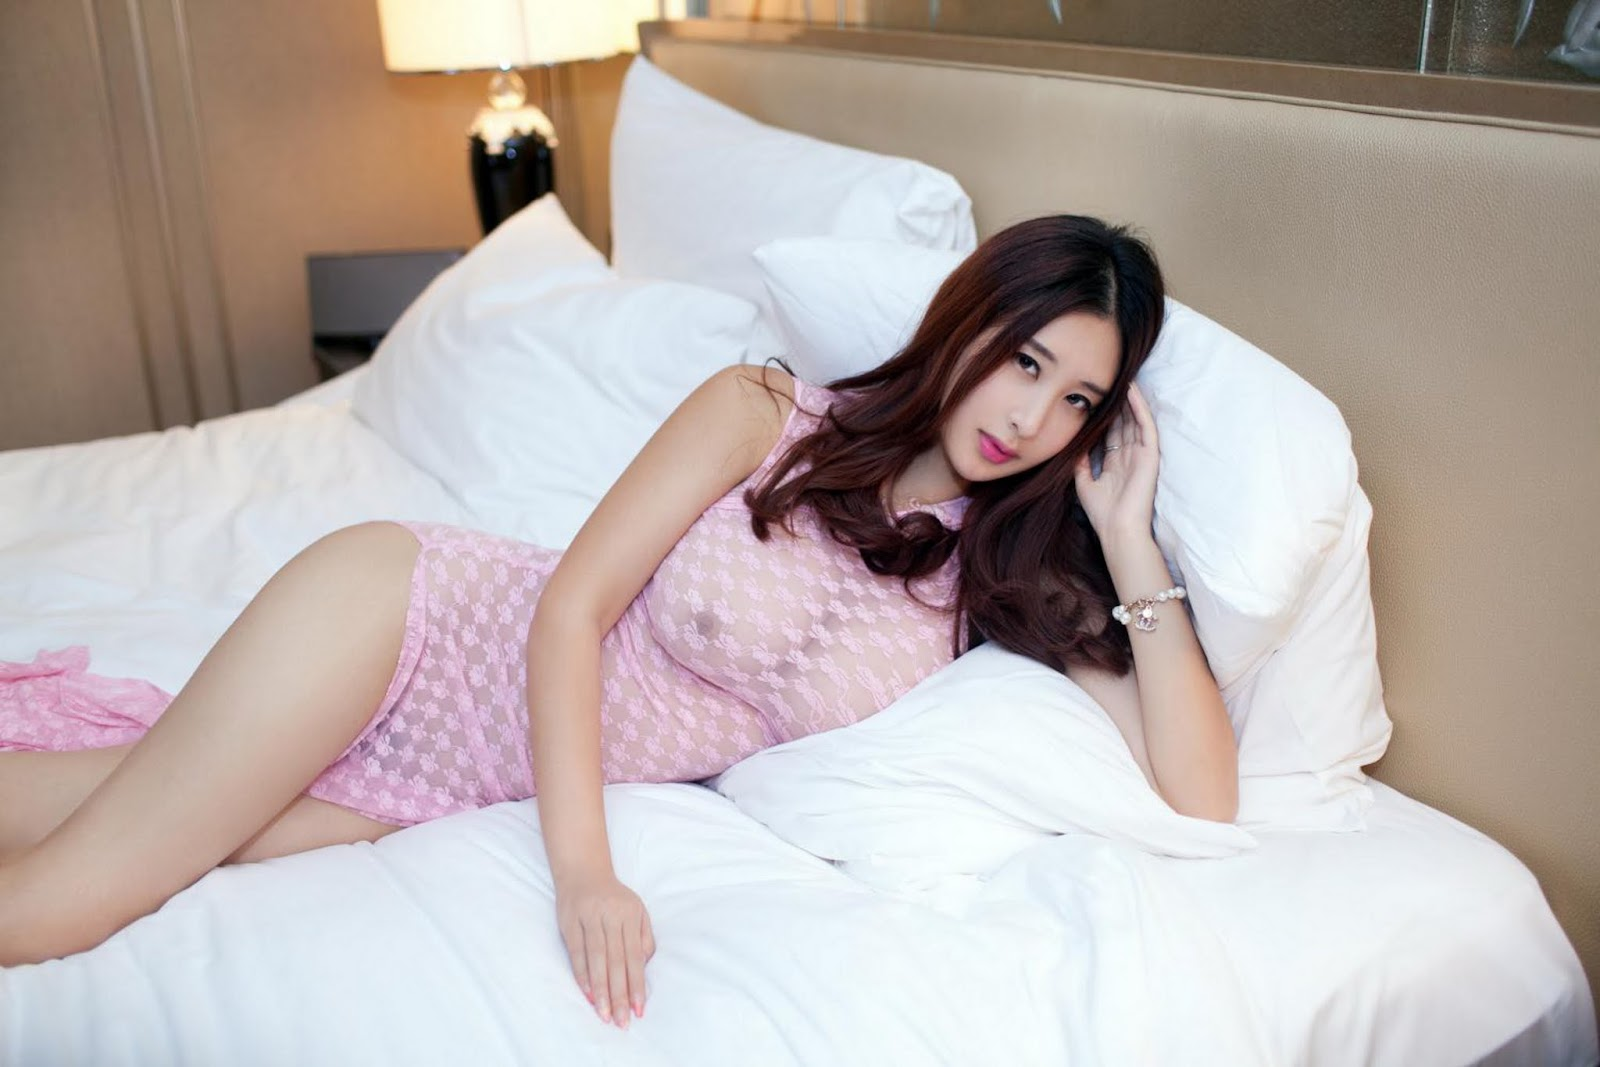 19 - Lake Model Sexy TUIGIRL NO.52 Hot